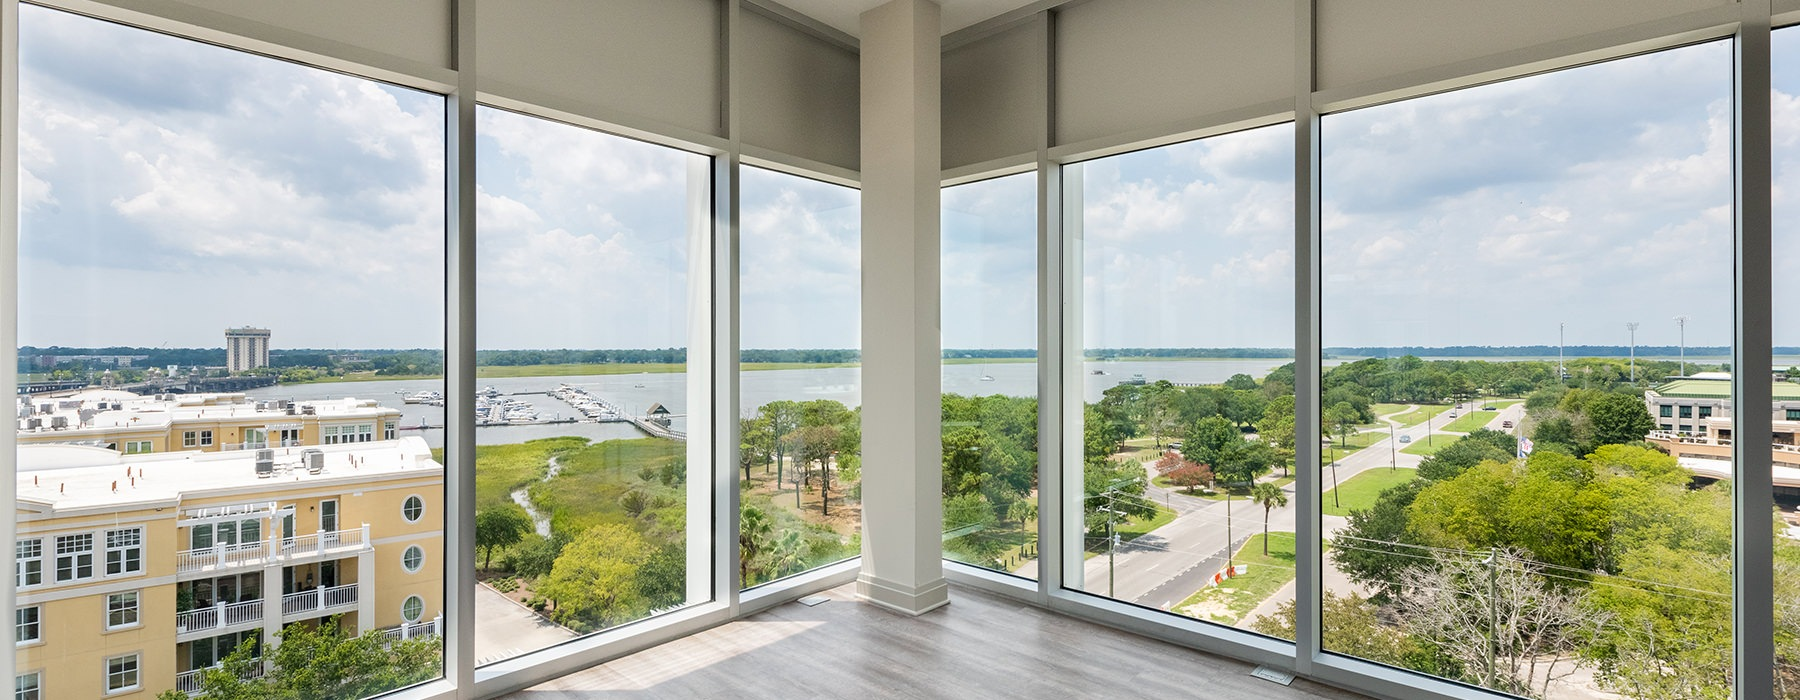 Spacious and naturally lit living room with dark plank wood flooring and a large window with a view of the bay